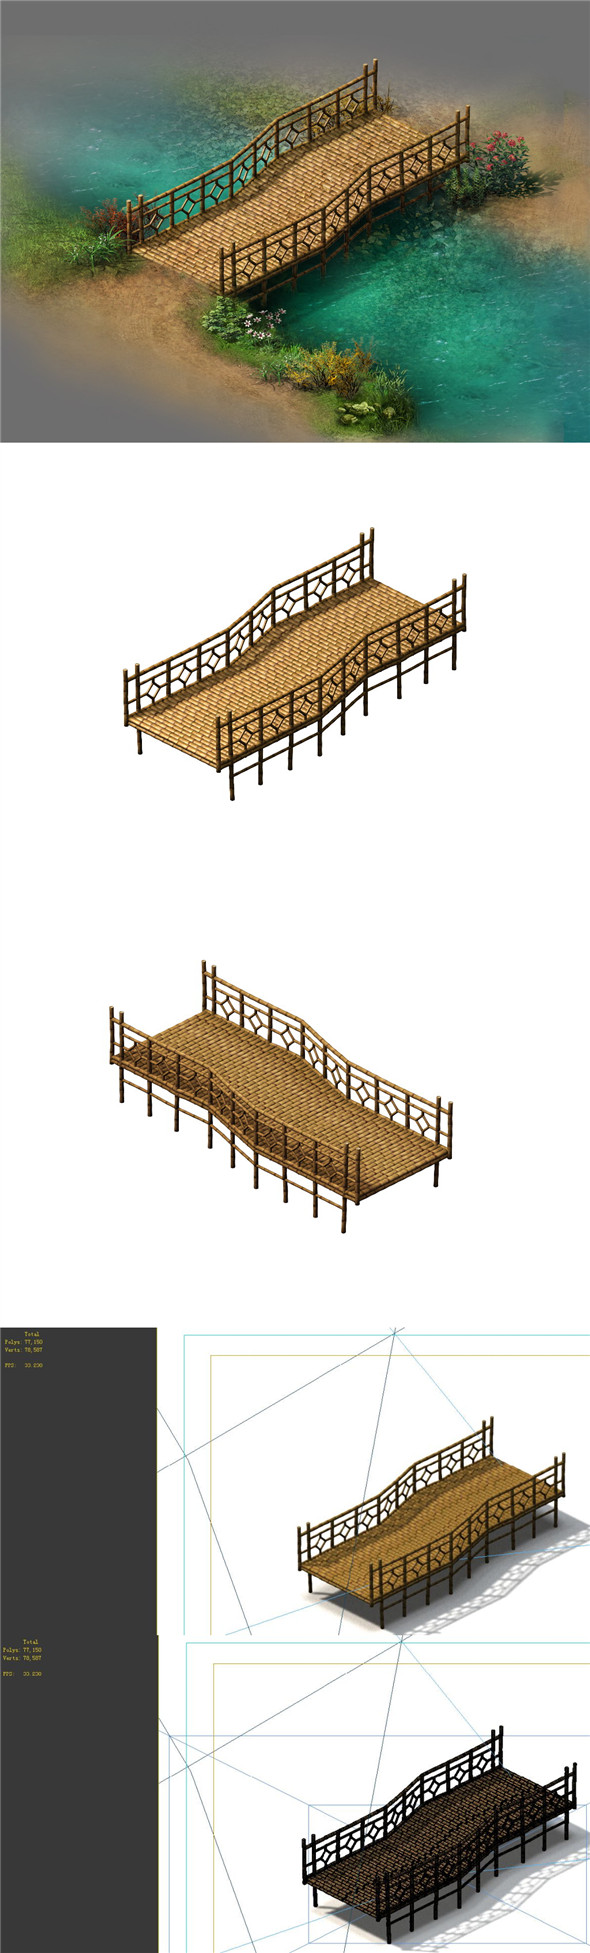 Field - Bamboo Bridge - 3DOcean Item for Sale